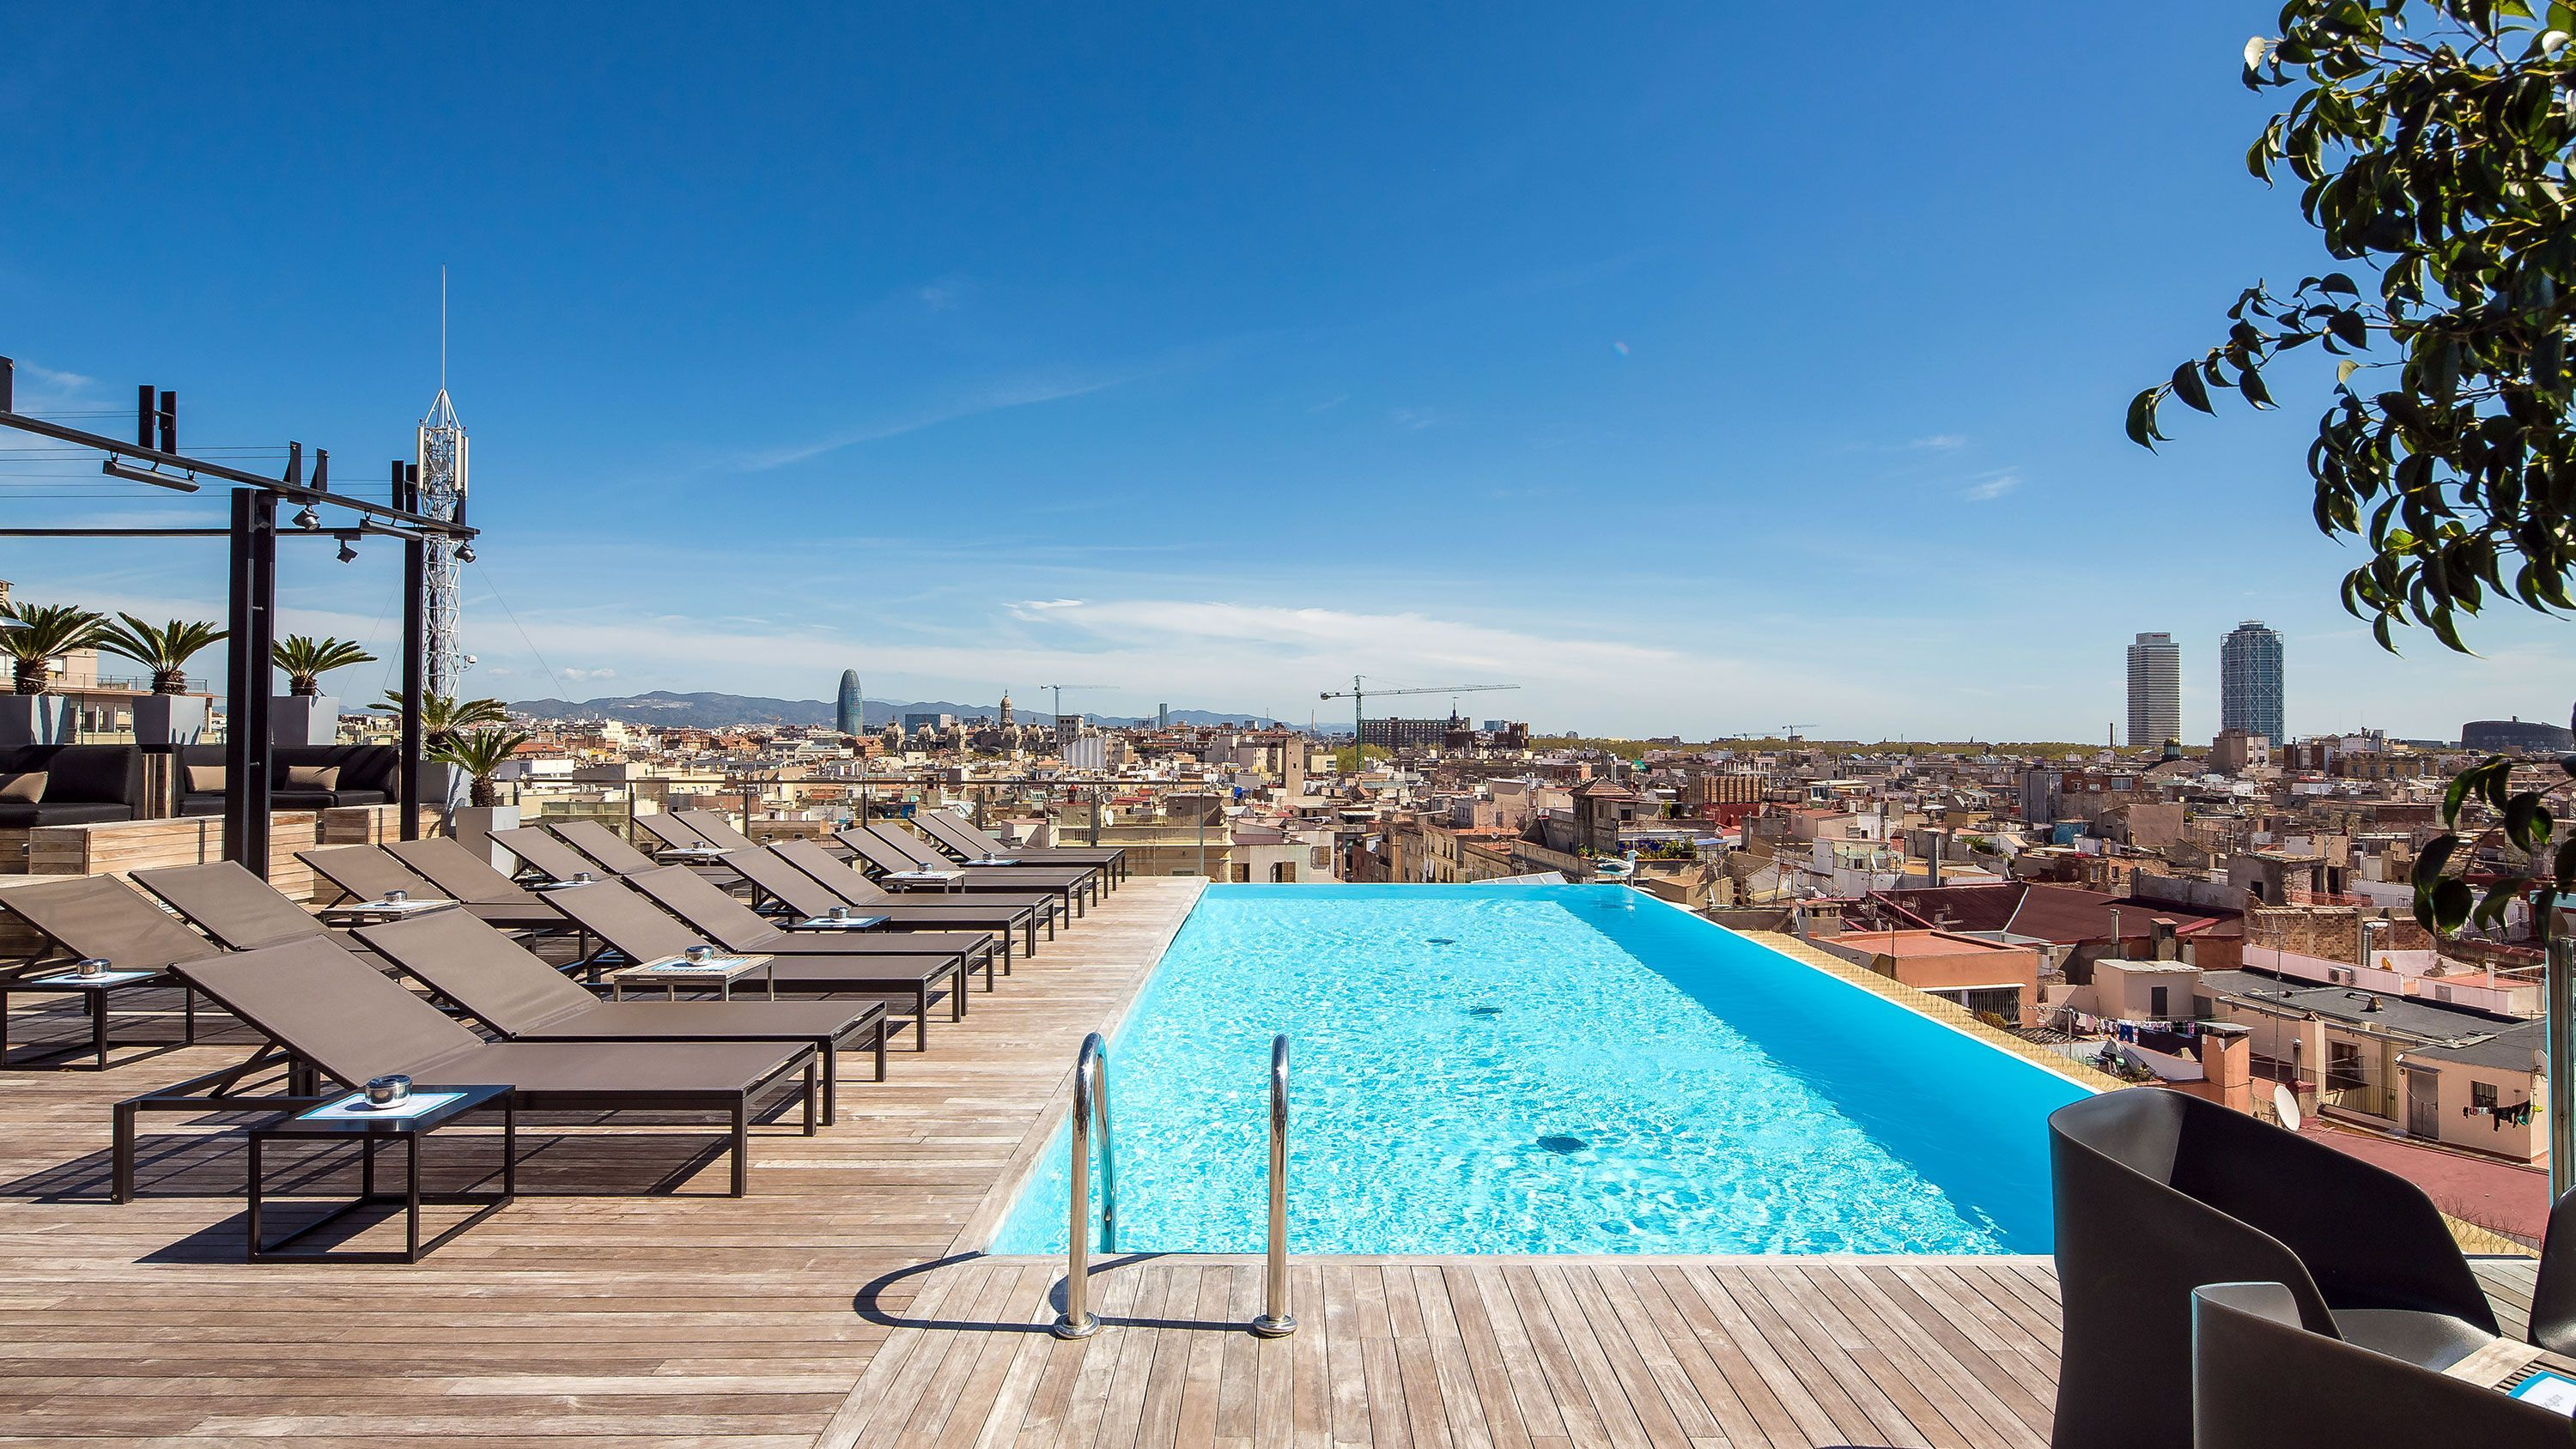 Grand Hotel Central Barcelona Grand Hotel Central, Barcelona #hotelspool | Cool Pools ...